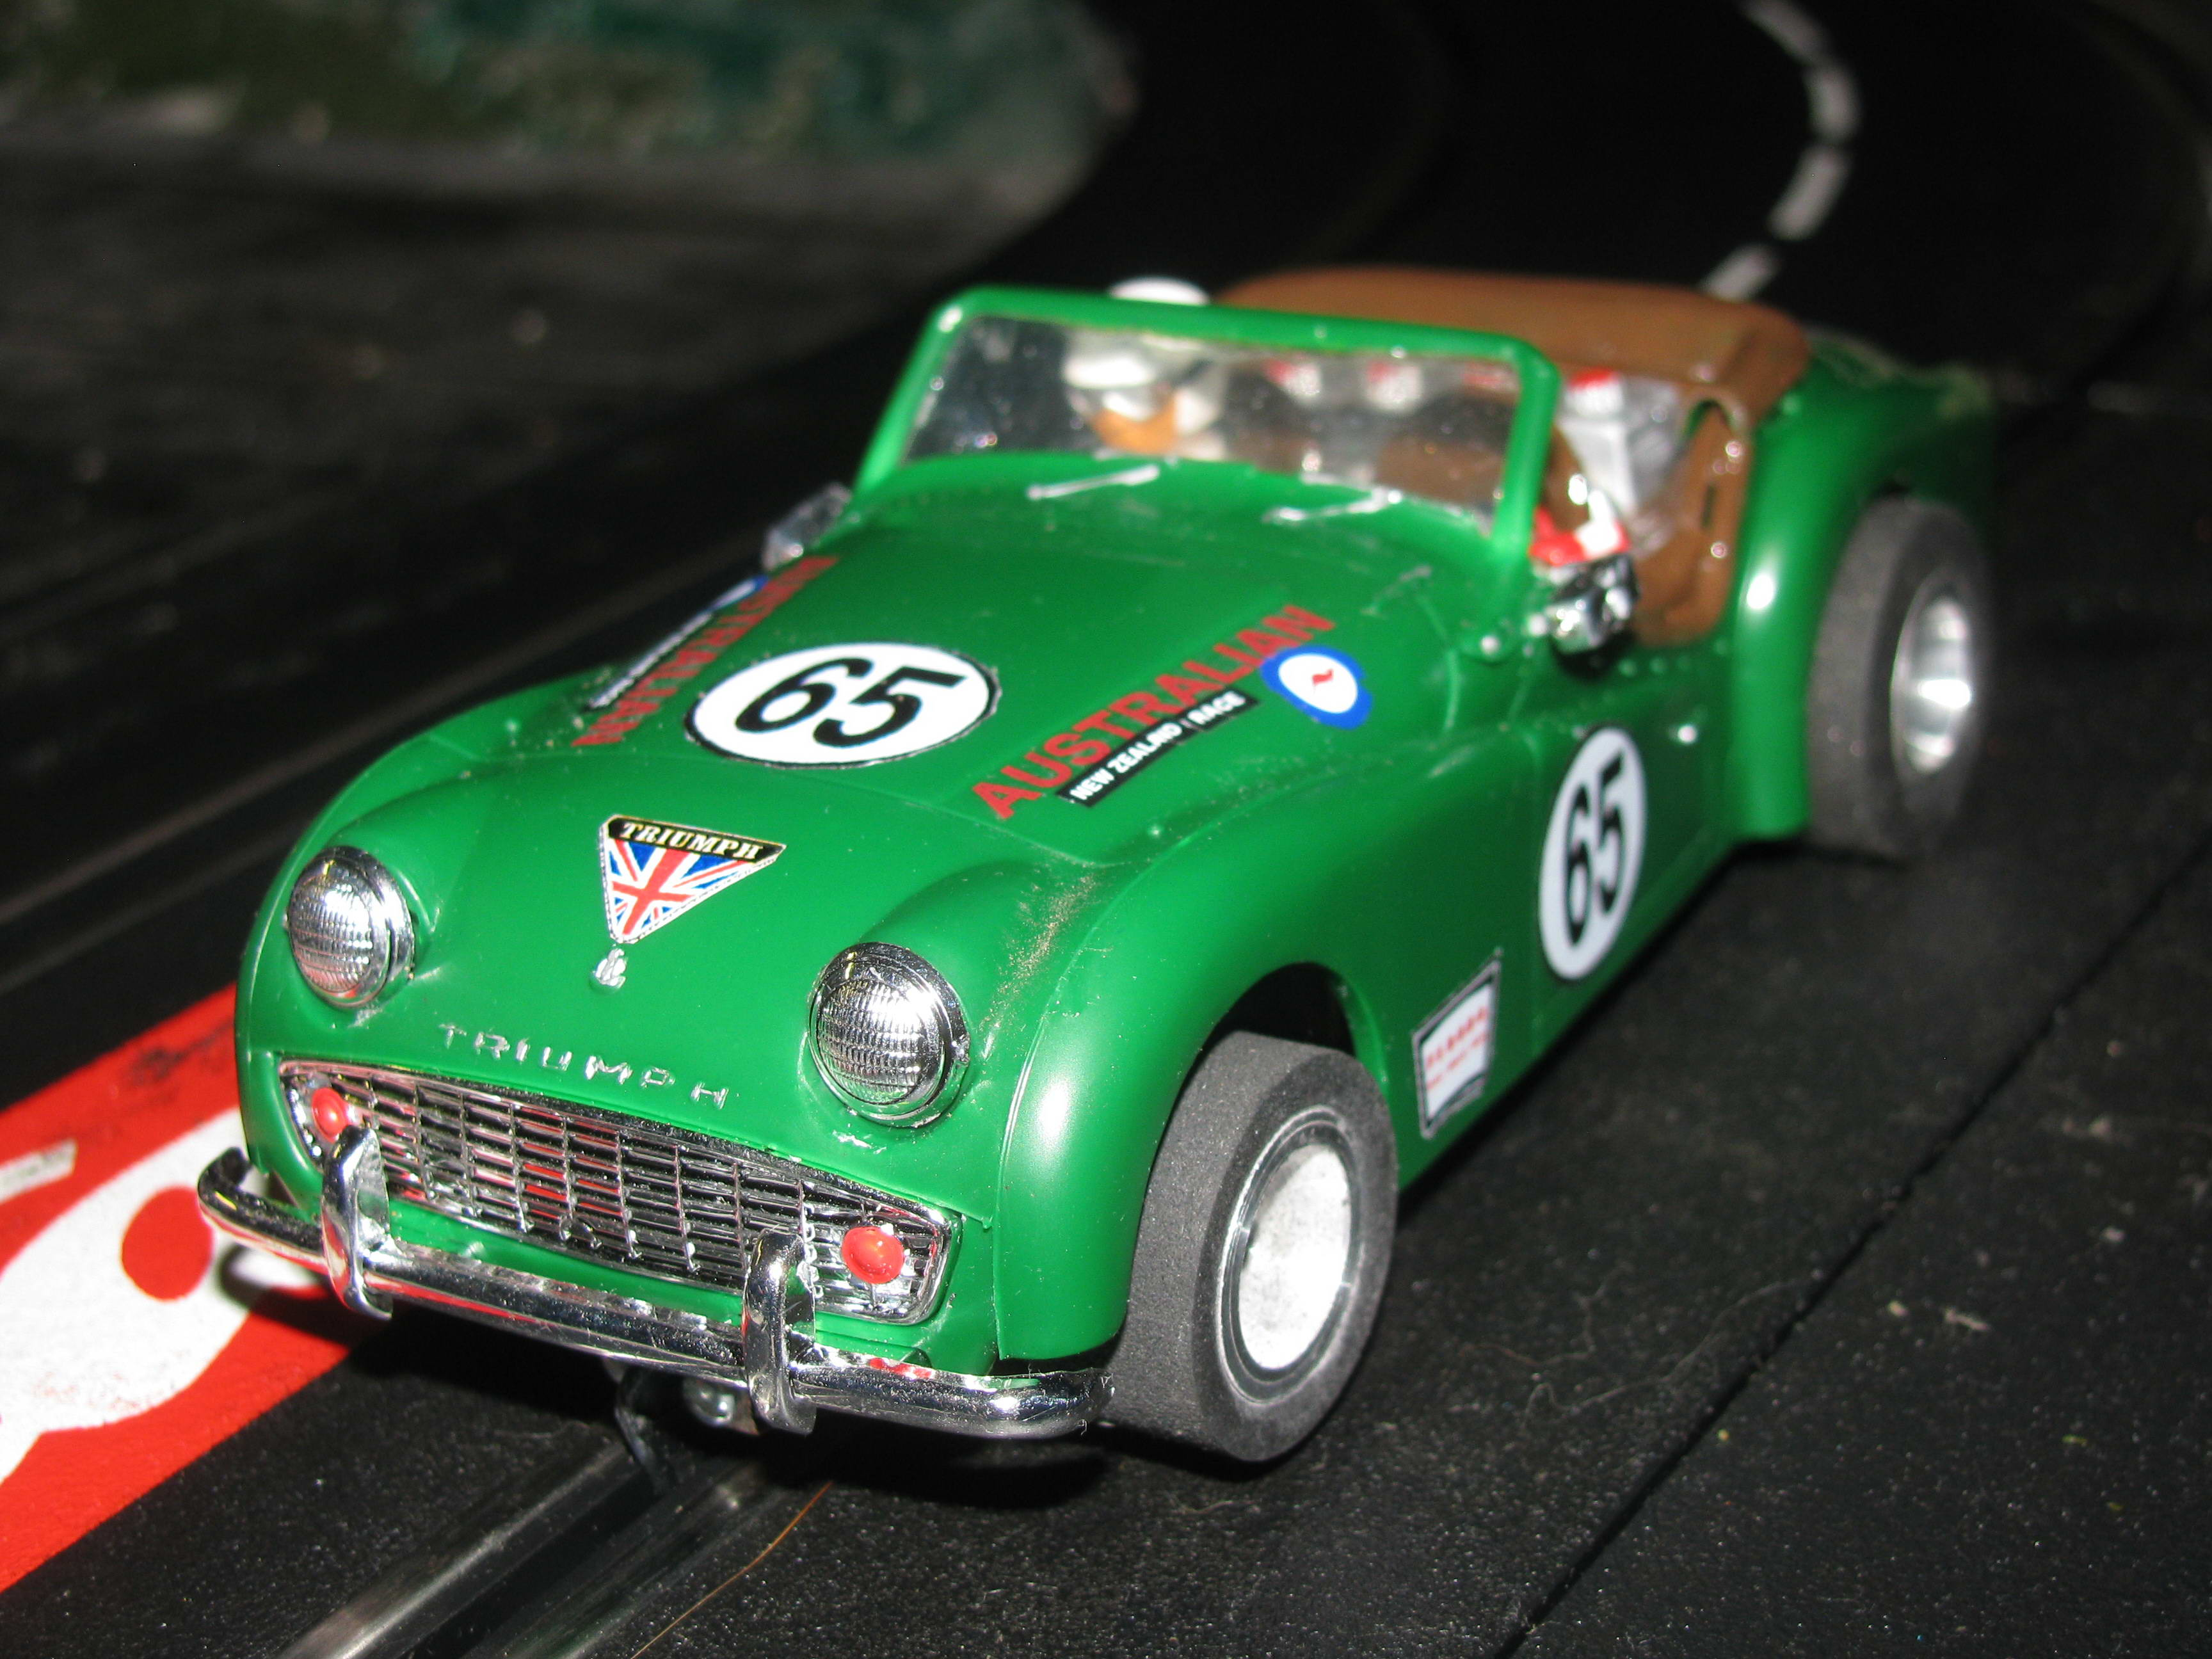 * SOLD * Vintage 1/24 Scale 1959 Triumph TR3A Australian New Zealand Racer in British Racing Green – Car 65